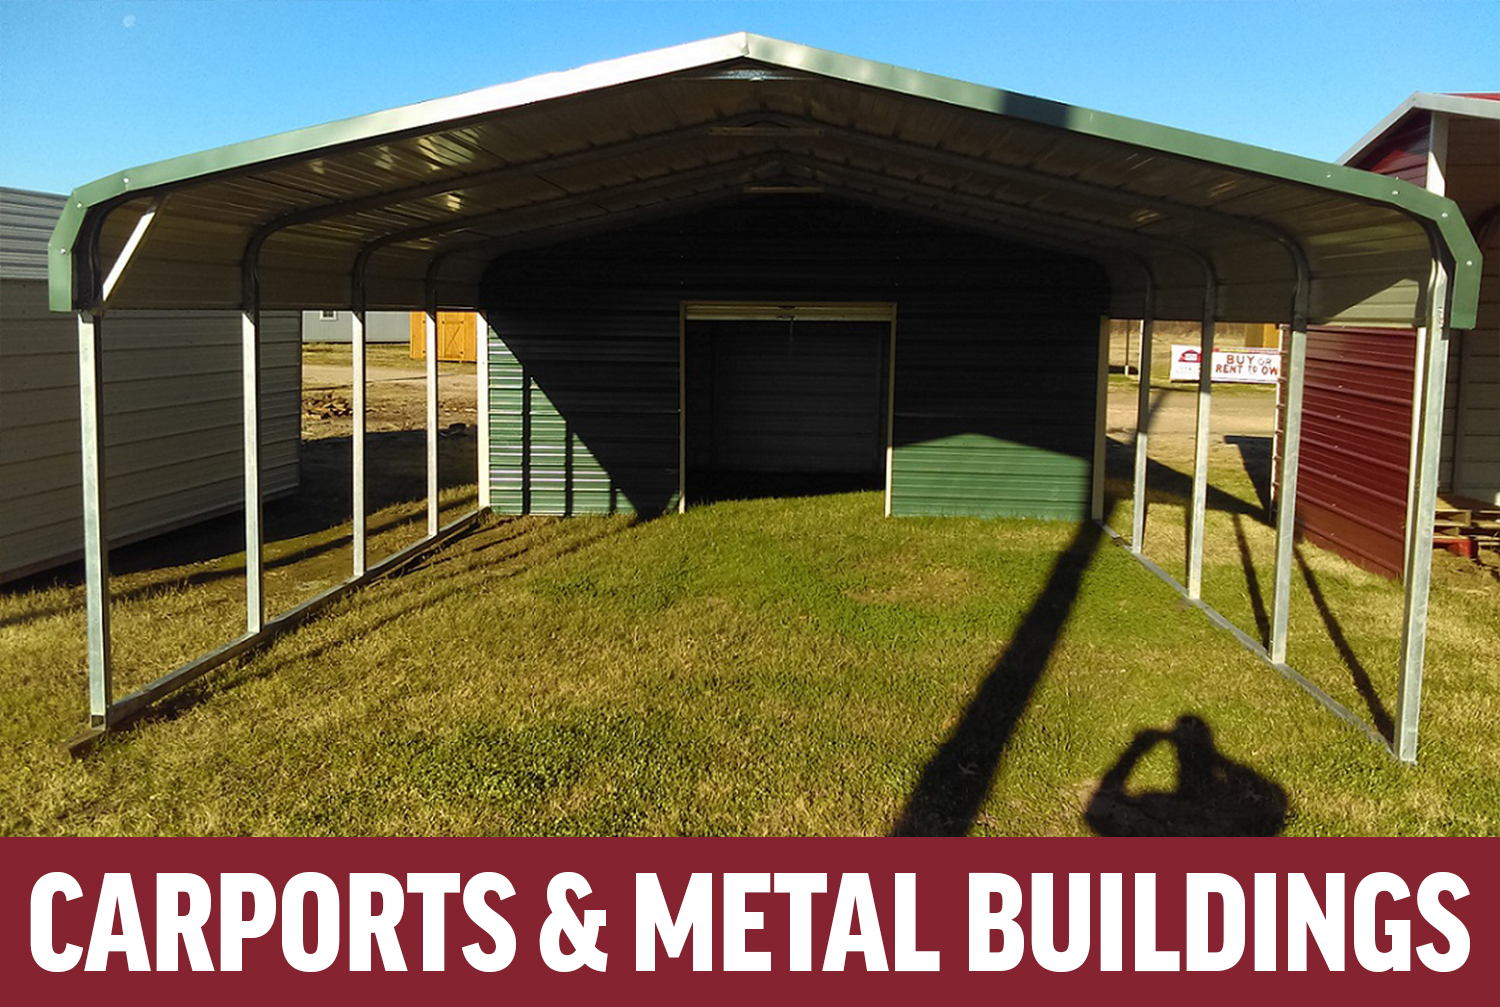 Carports & Metal Buildings